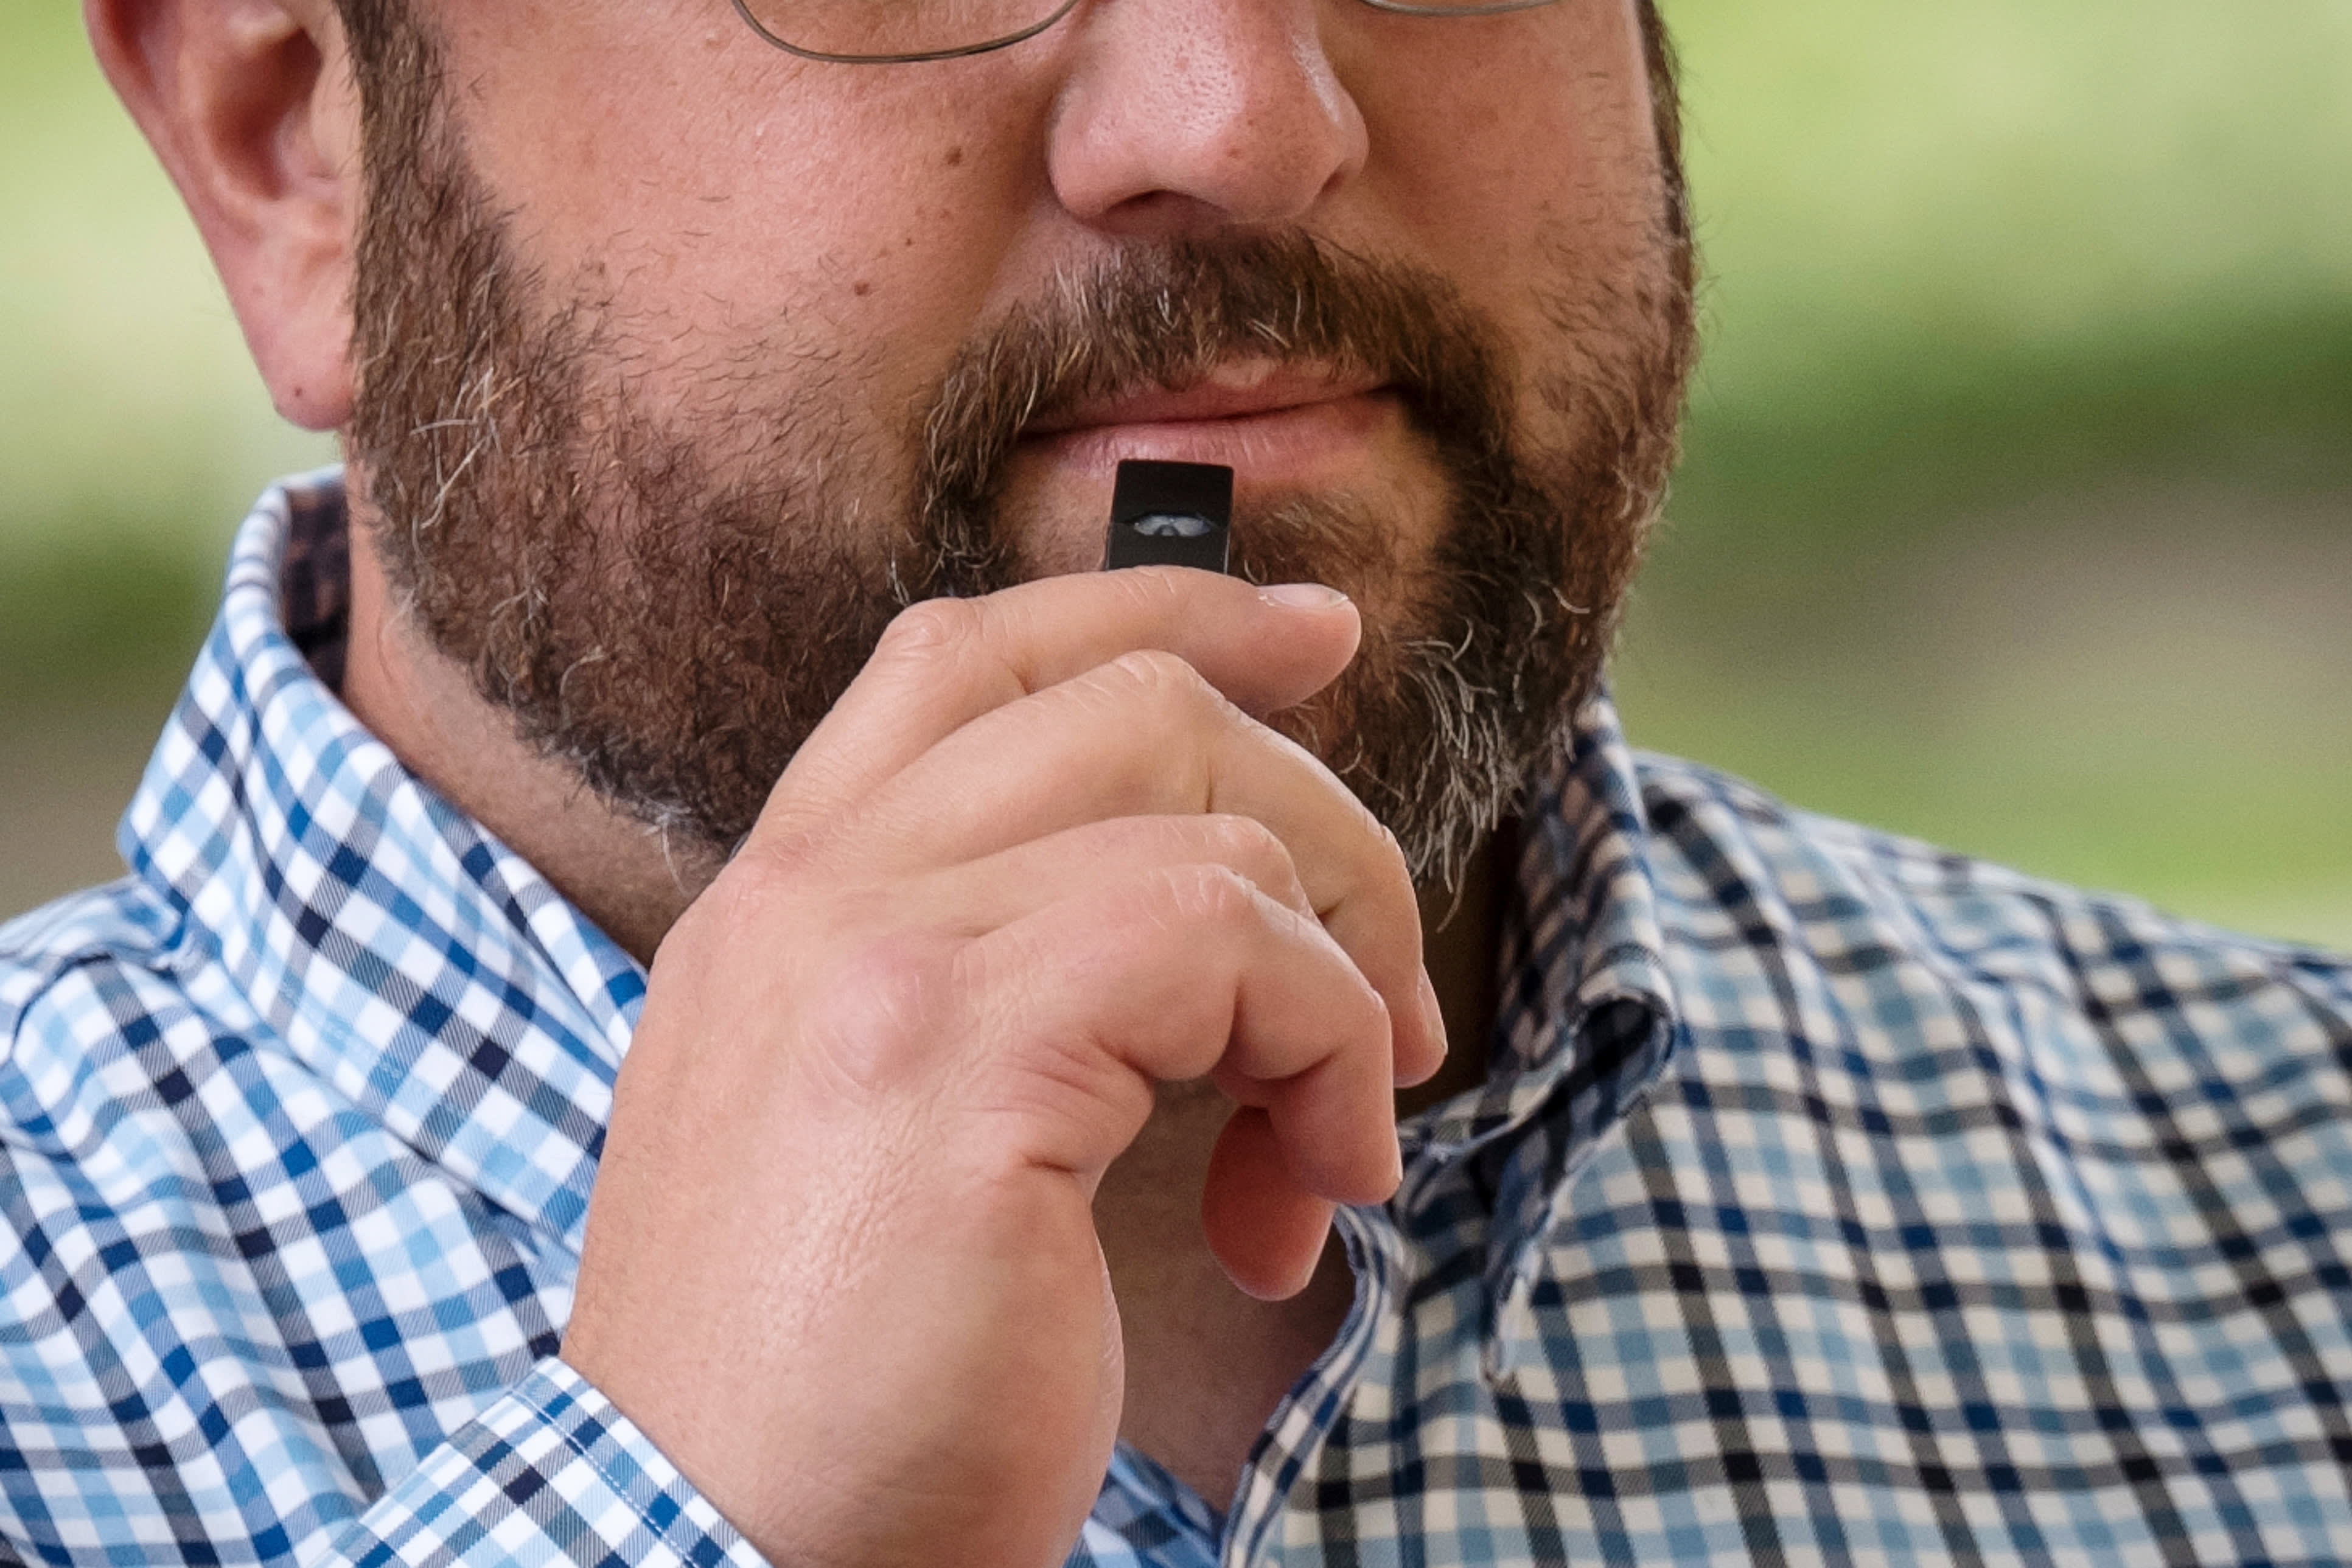 San Francisco bans e-cigarette sales, becoming the first US city to do so